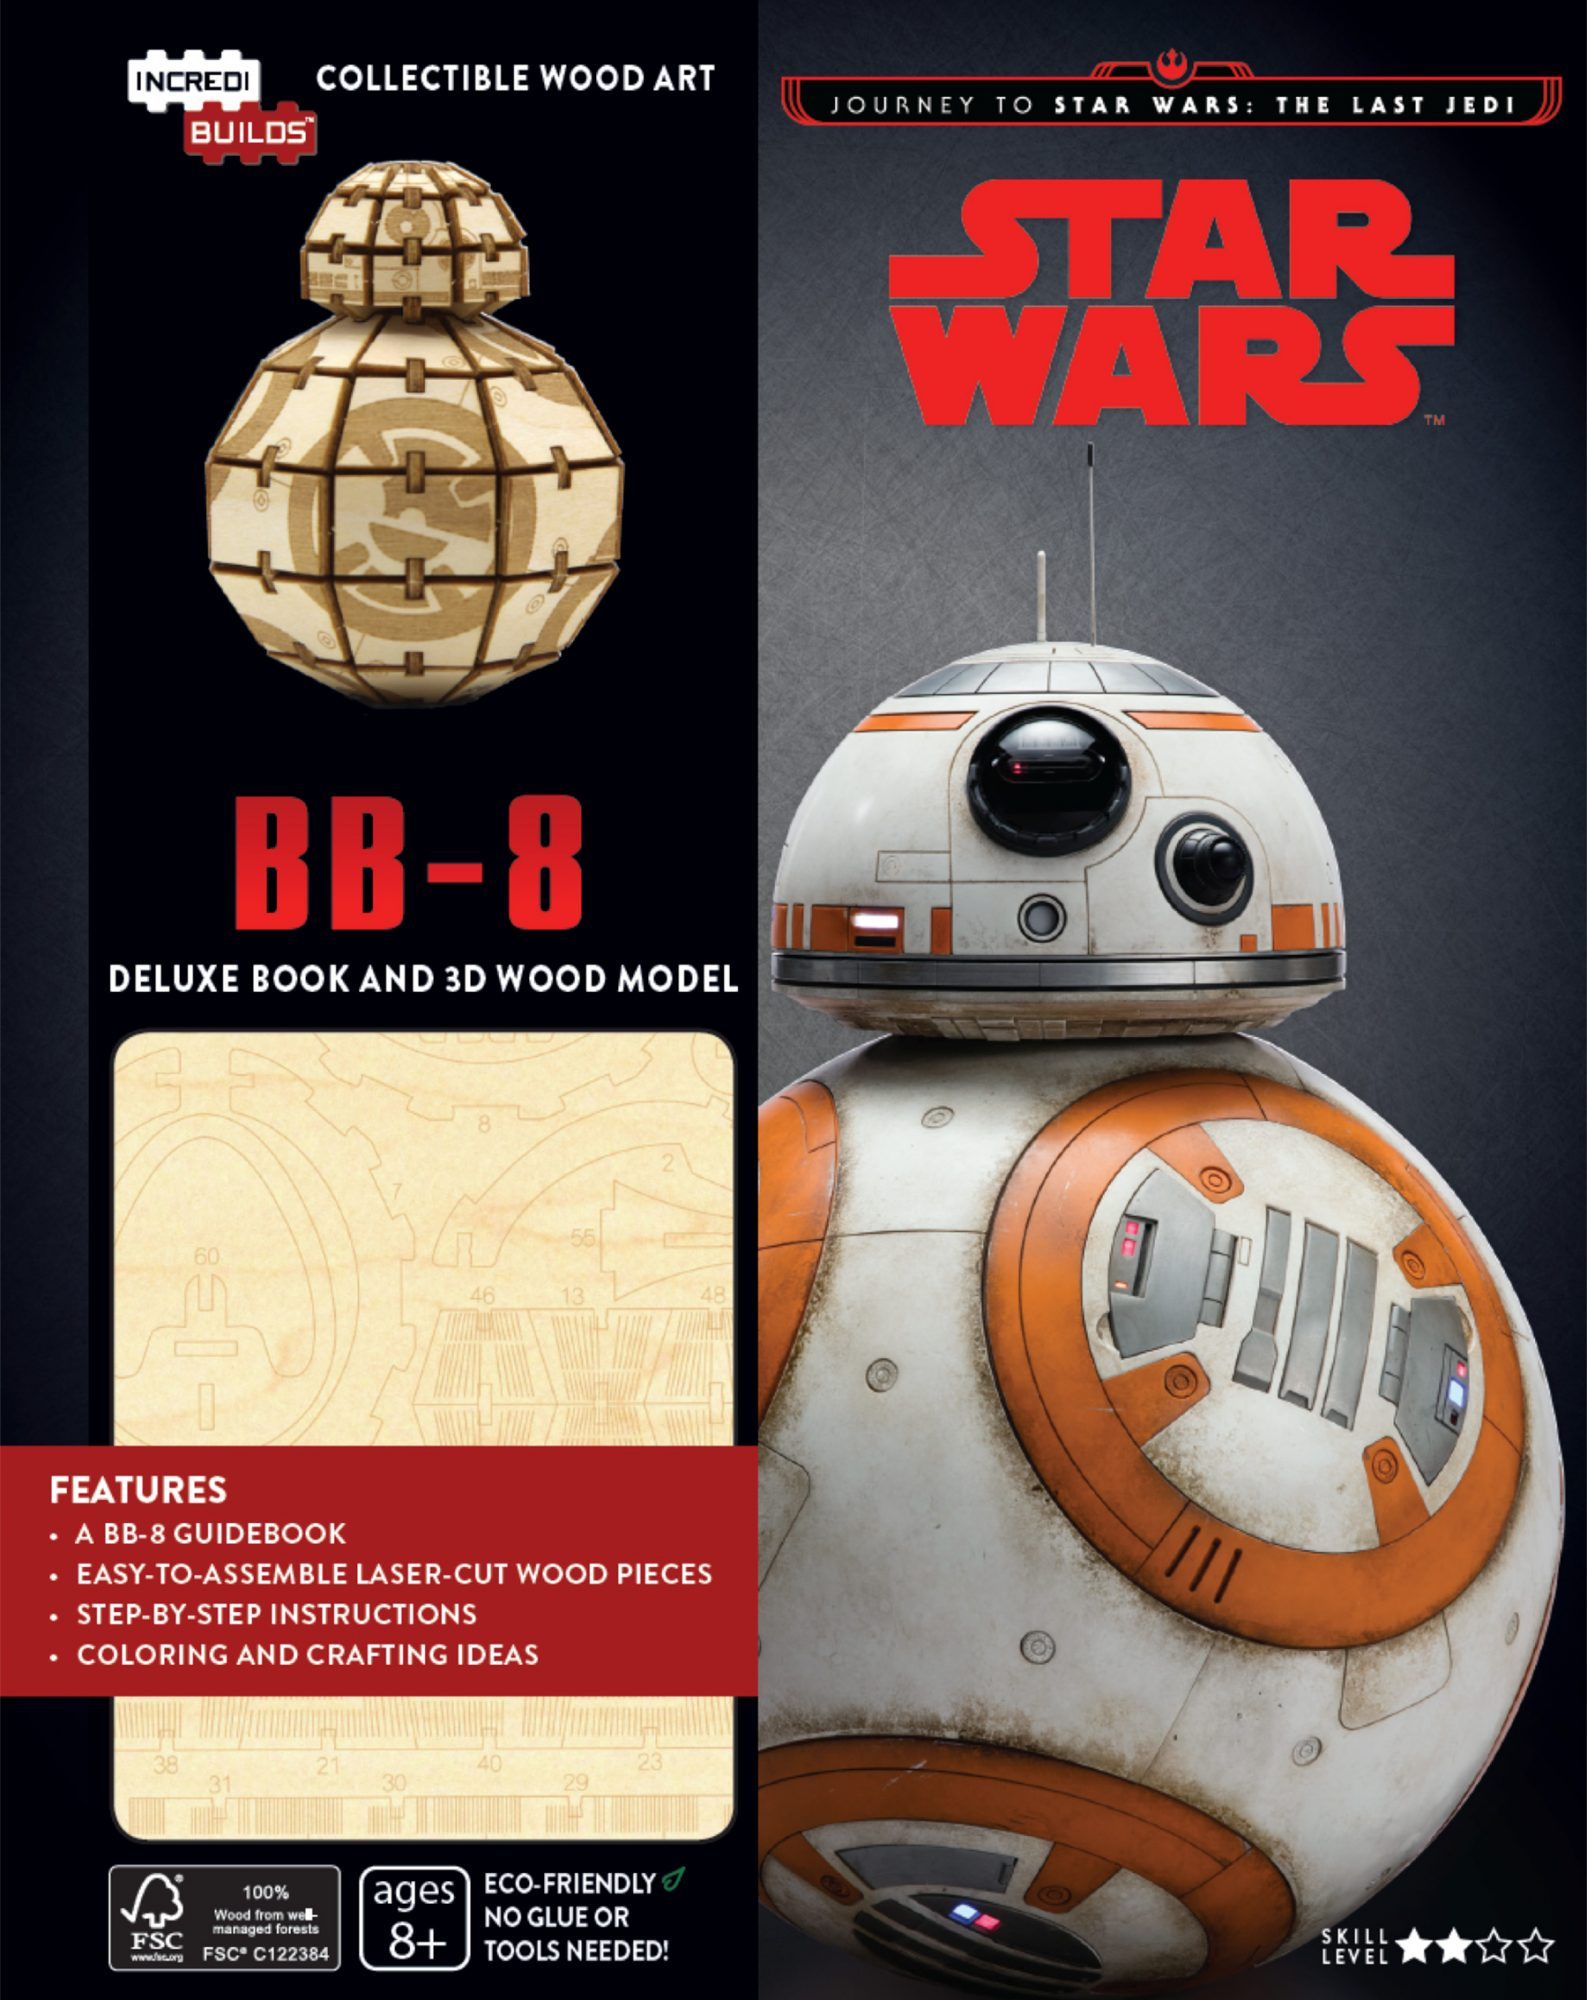 The Last Jedi - BB-8 IncrediBuild, by Dan Wallace